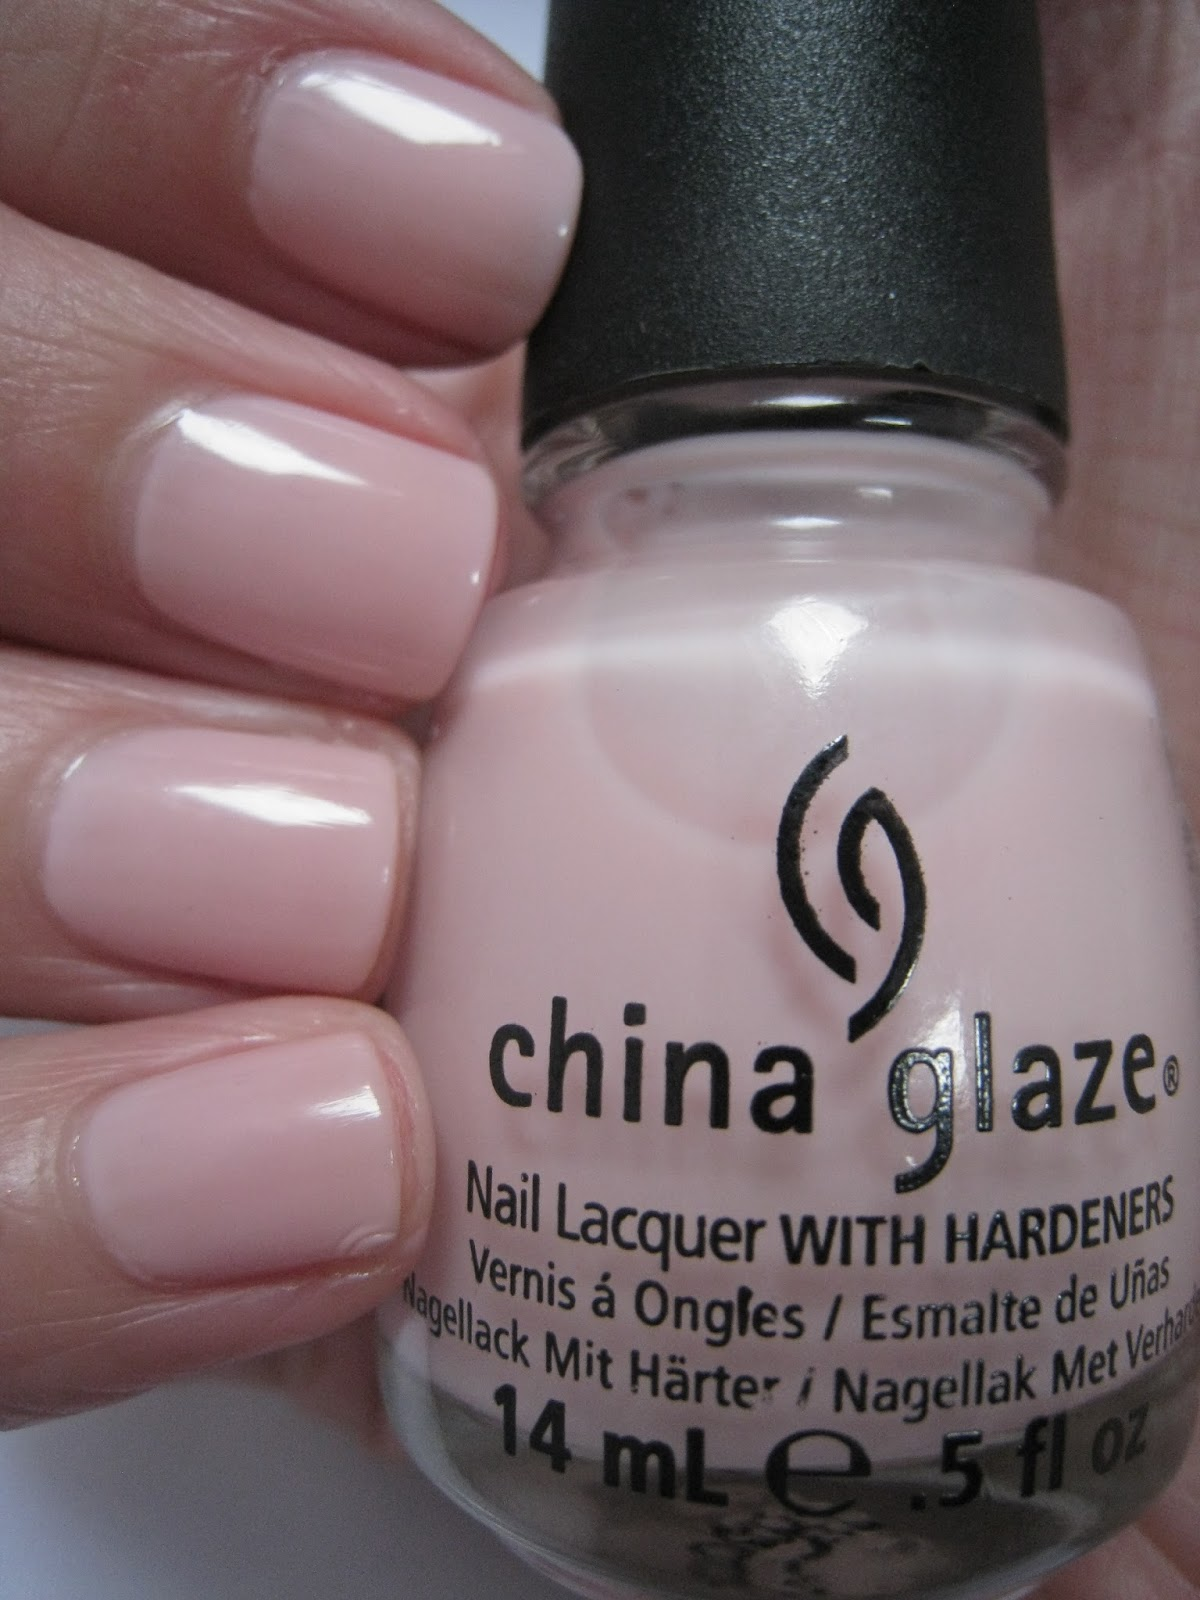 China Glaze Nail Polish Color Swatches - To Bend Light